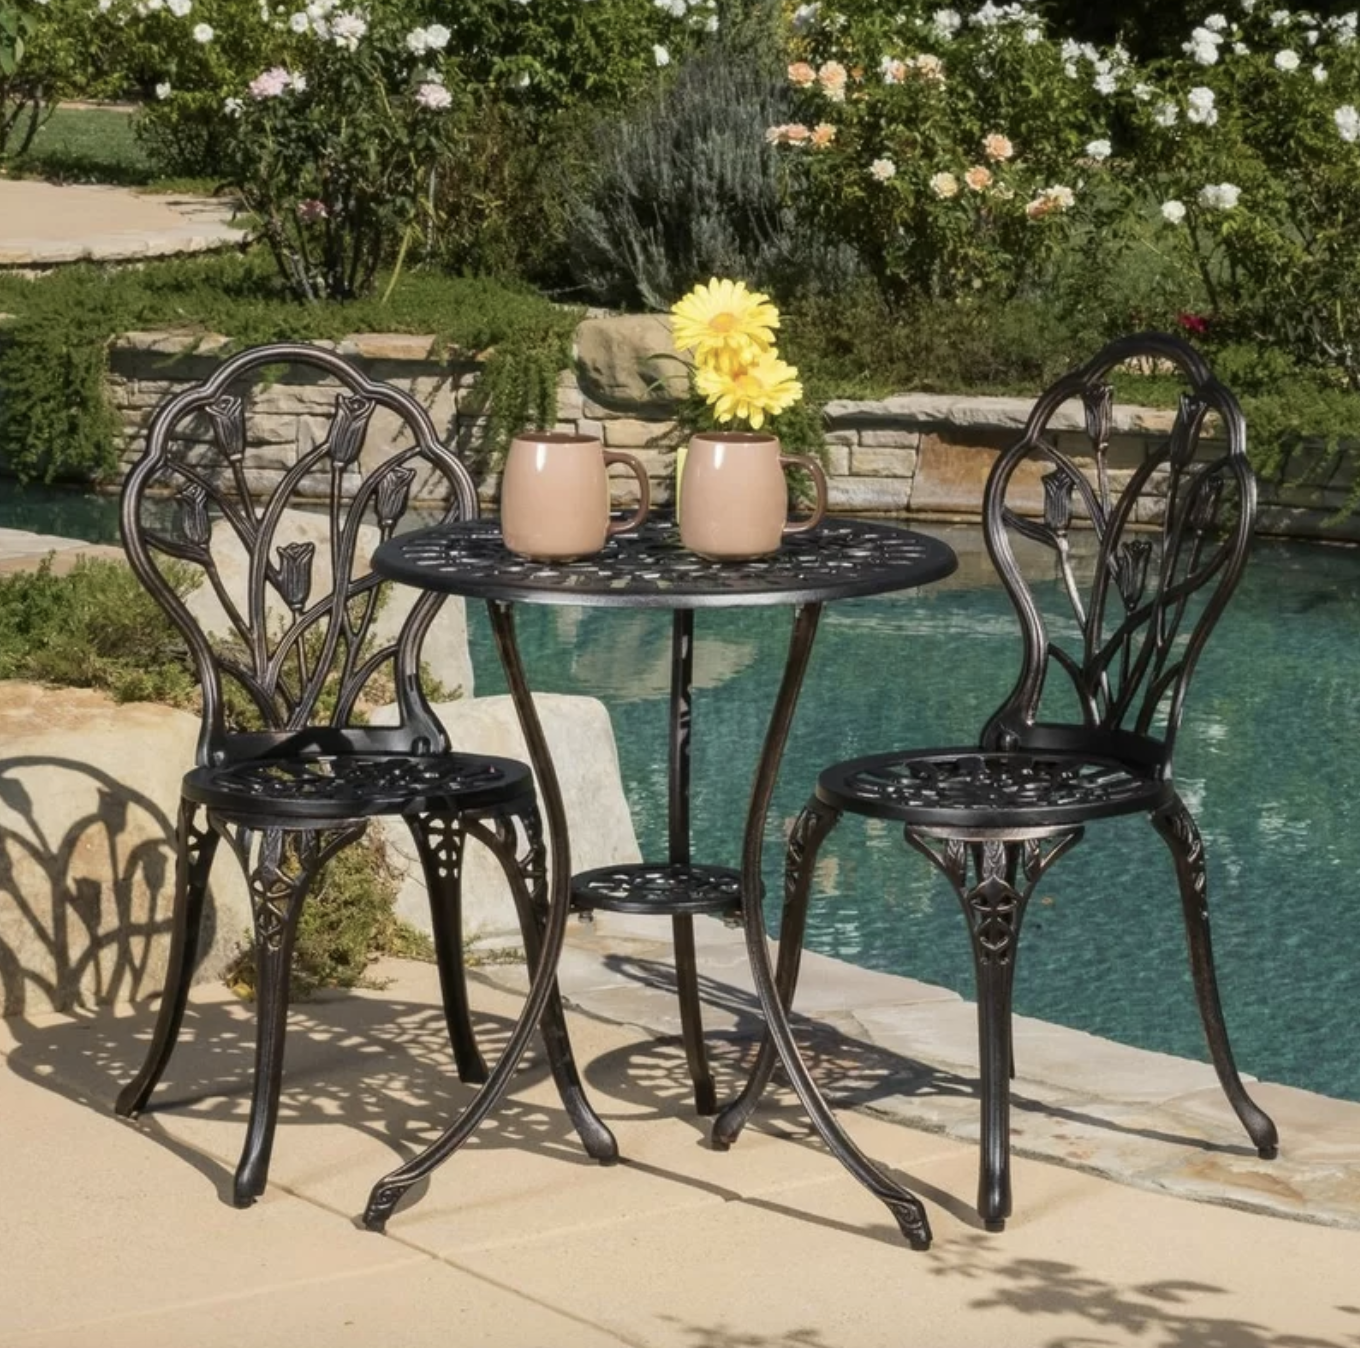 The bronze bistro table and two chairs with a tulip design